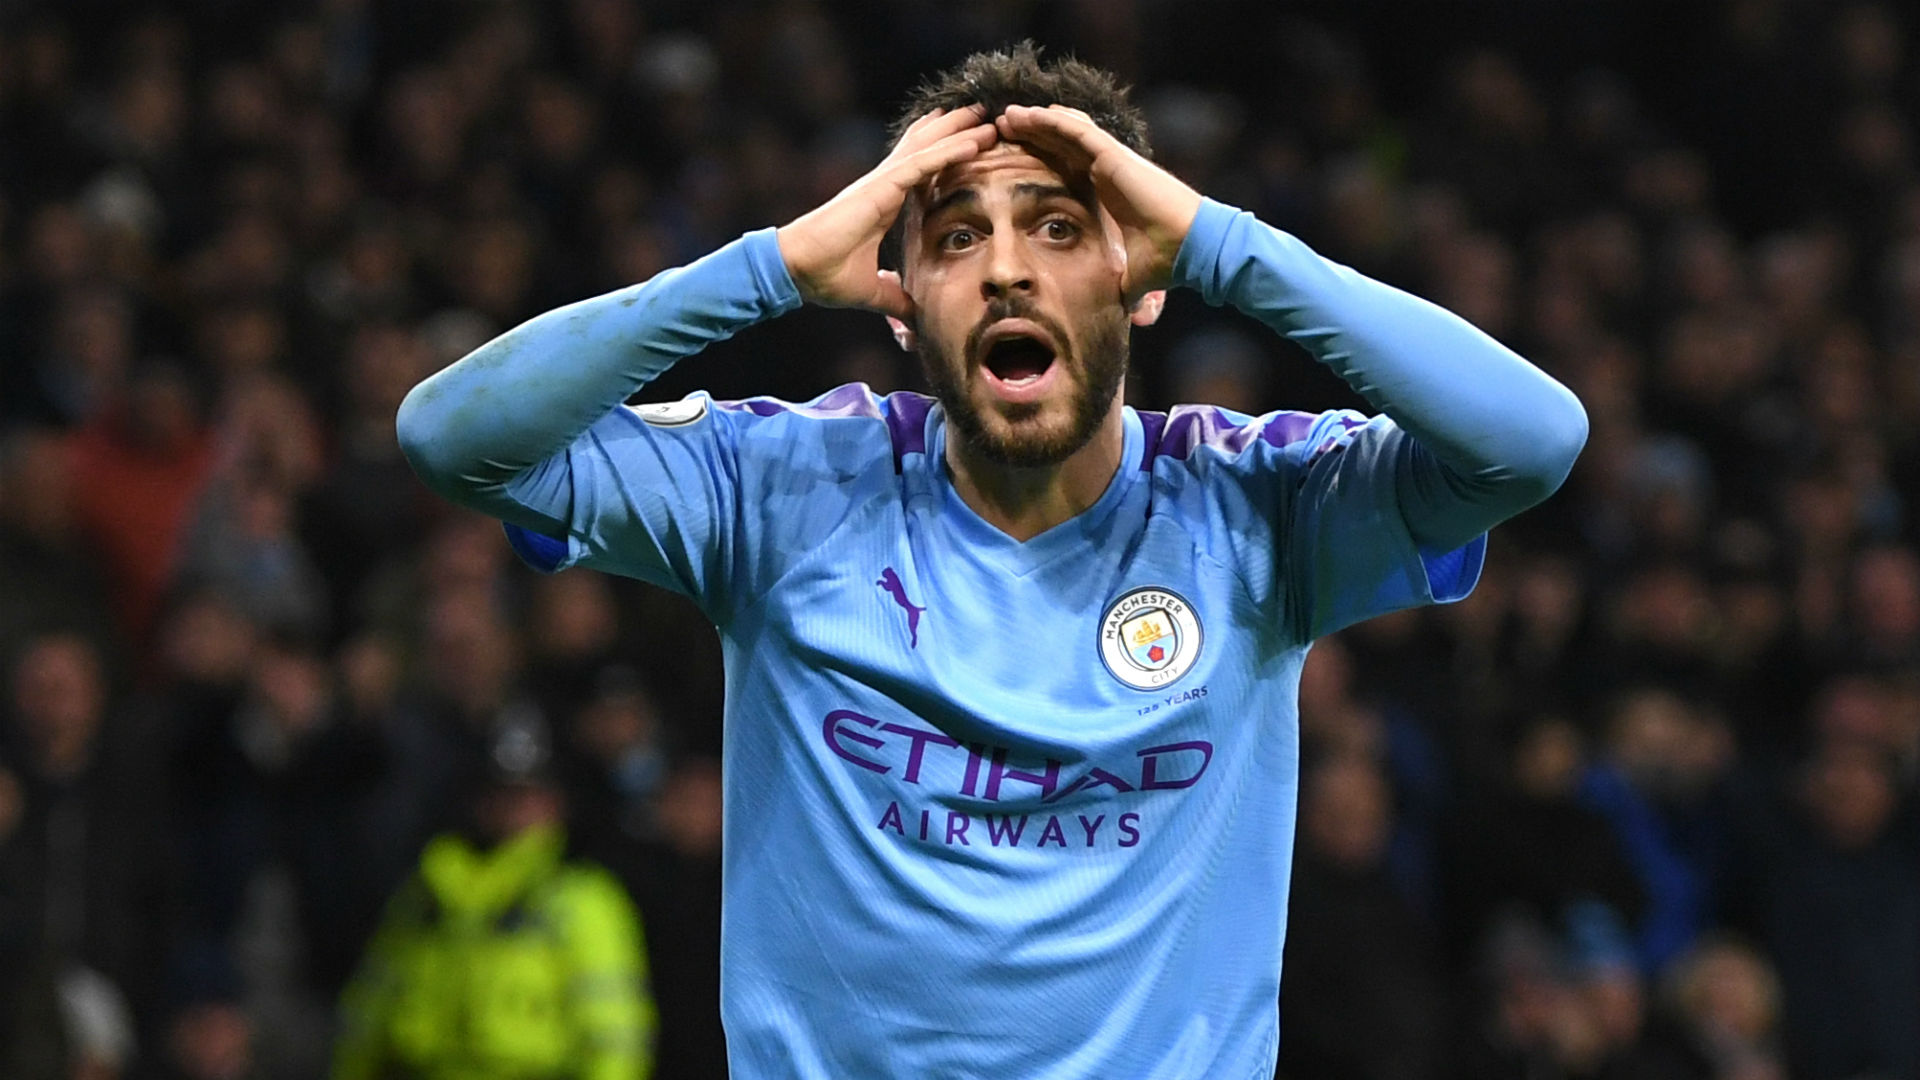 Bernardo Silva hits out at 'pathetic' Liverpool fans for trolling him